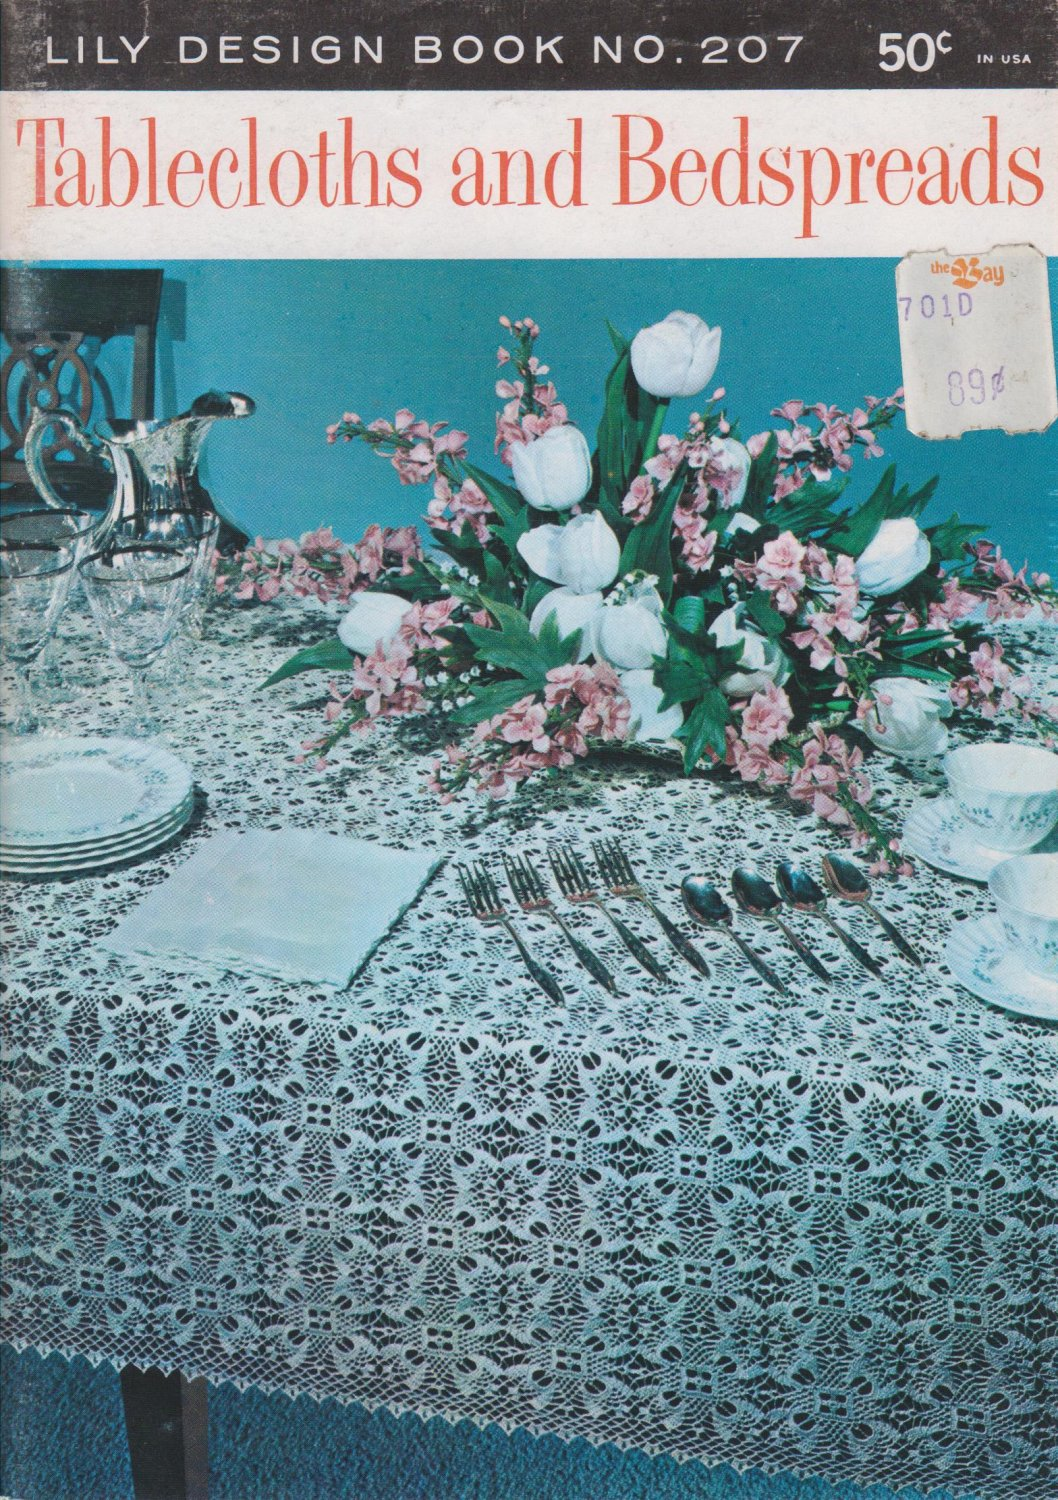 Lily Design Book No.207 Tablecloths and Bedspreads 1978 Crochet Pattern Booklet